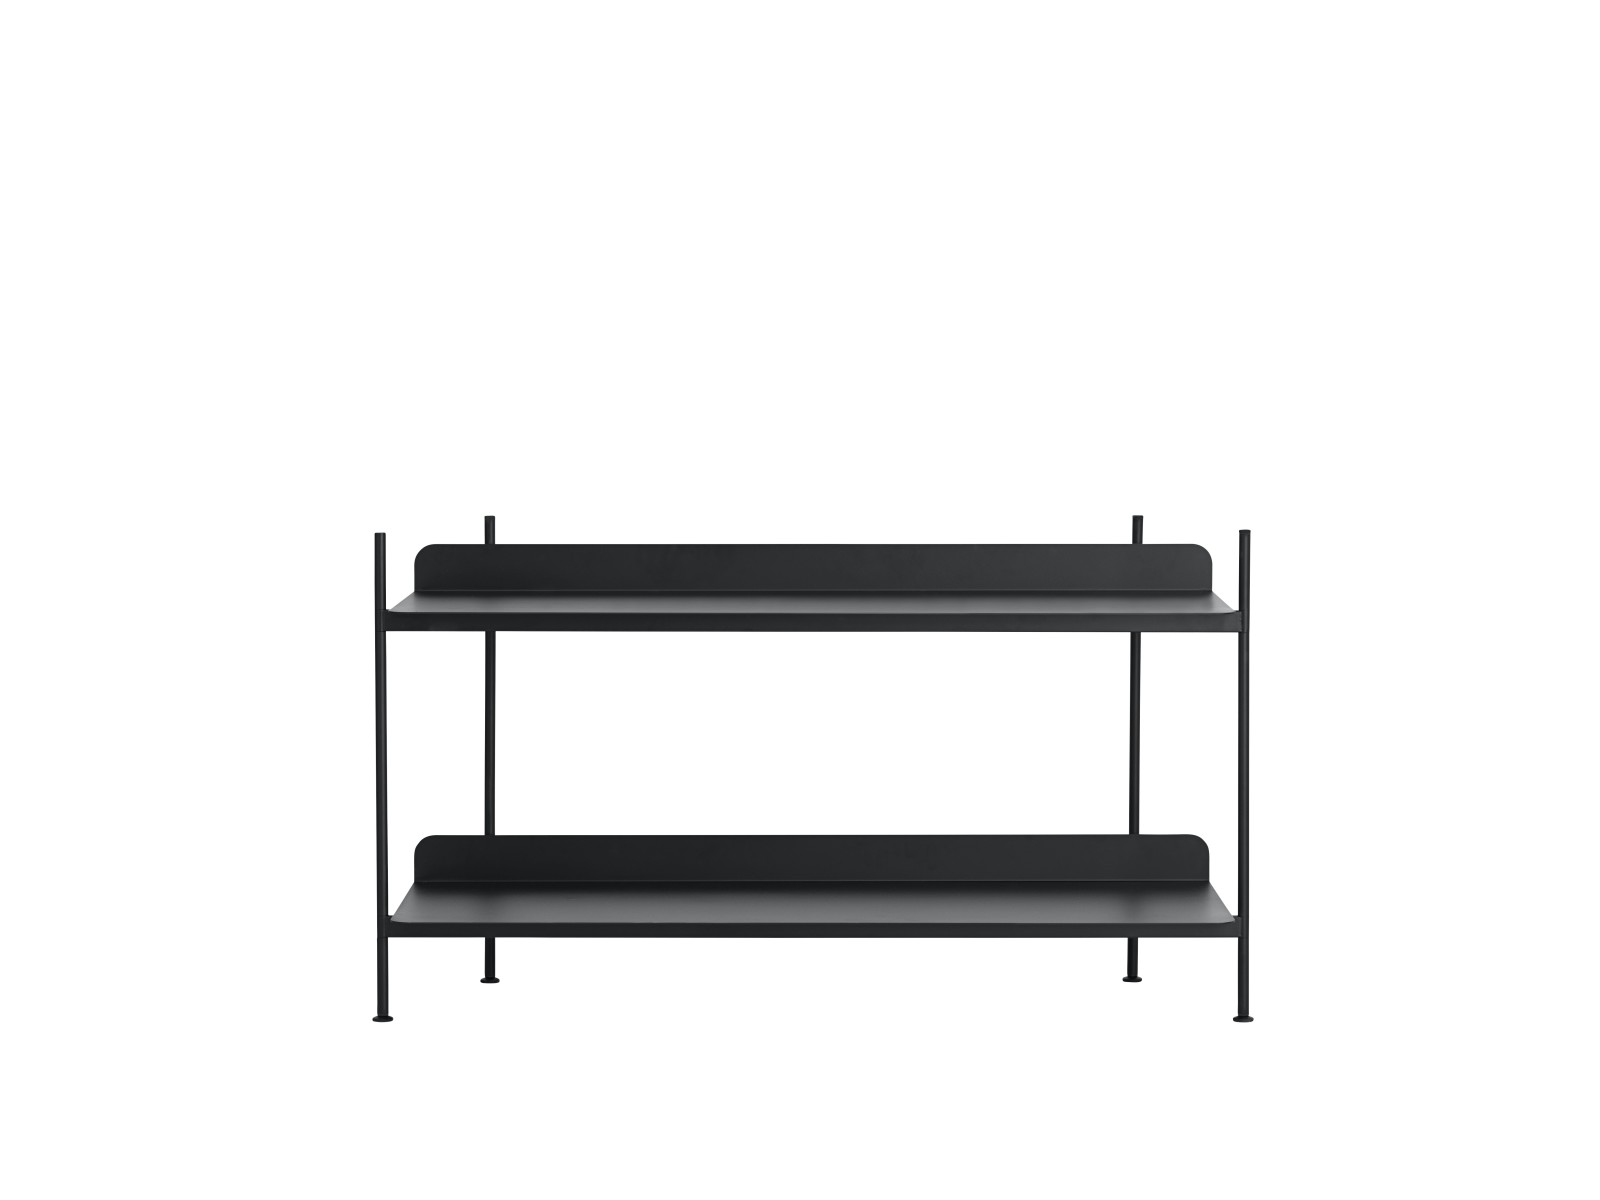 Compile Shelving System Configuration 1, Black